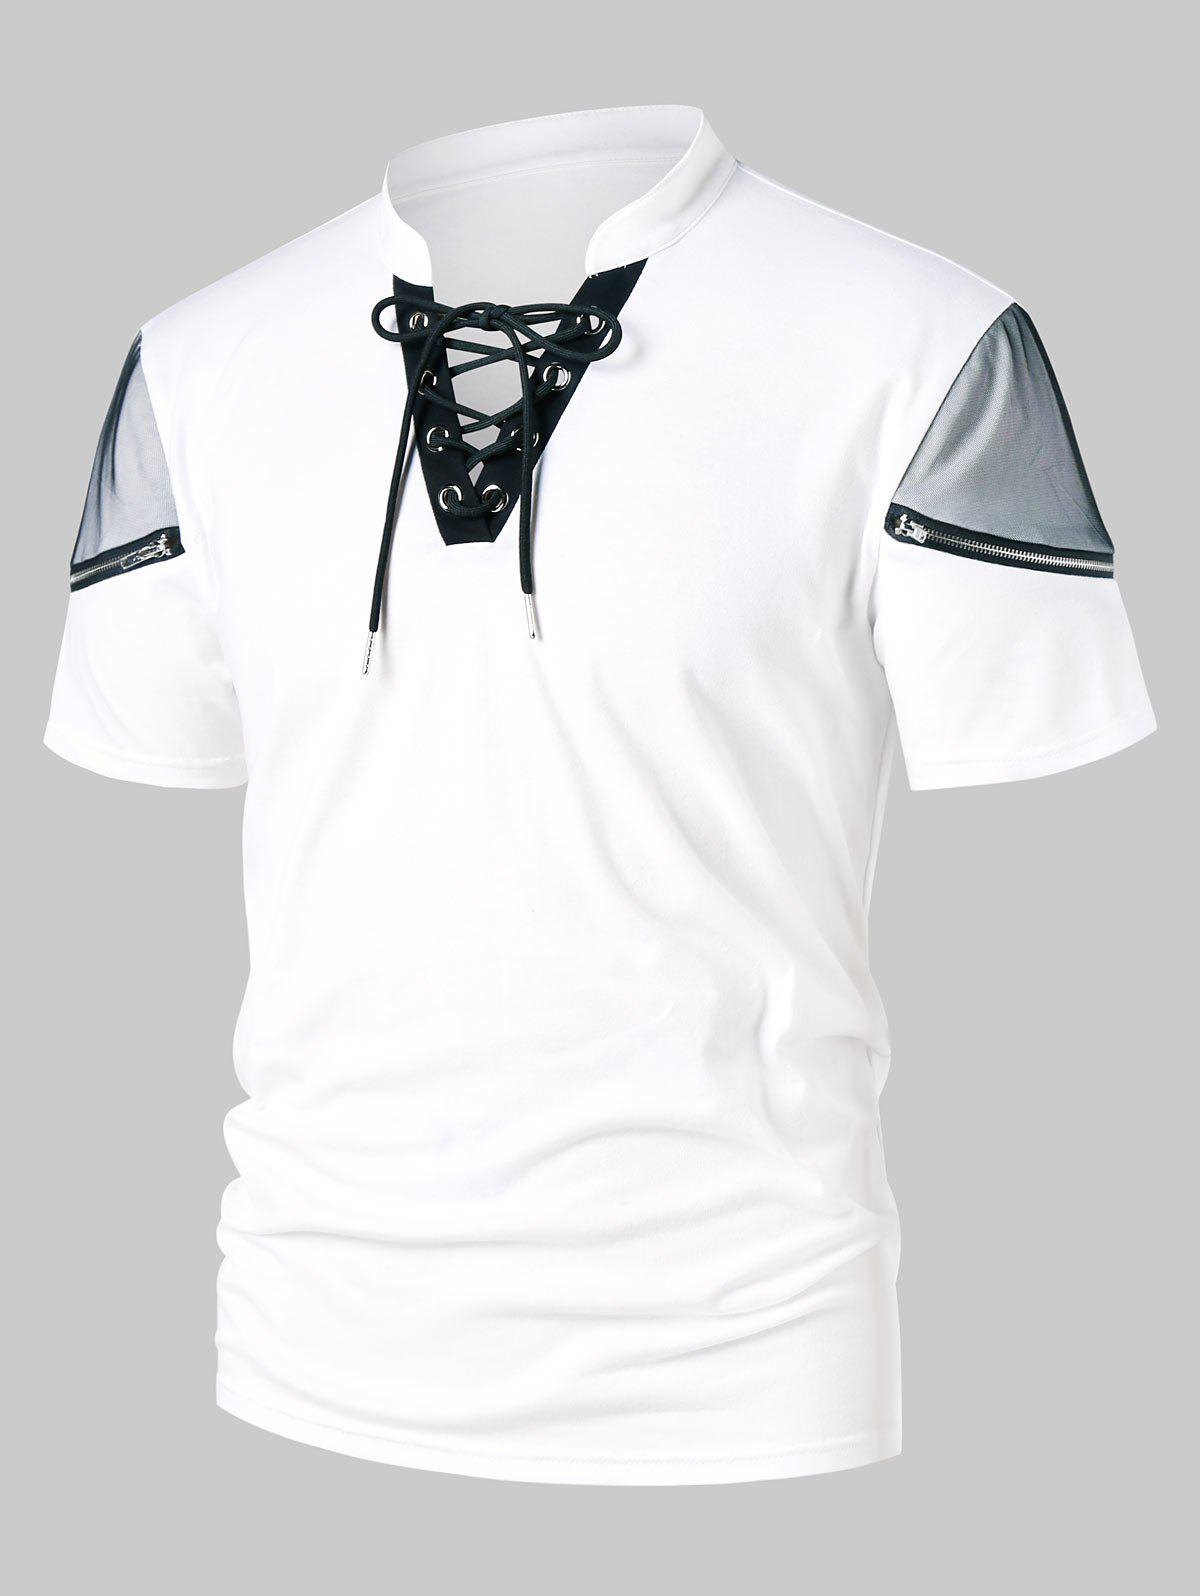 Lace Panel Zipper Stand Collar T-shirt, White